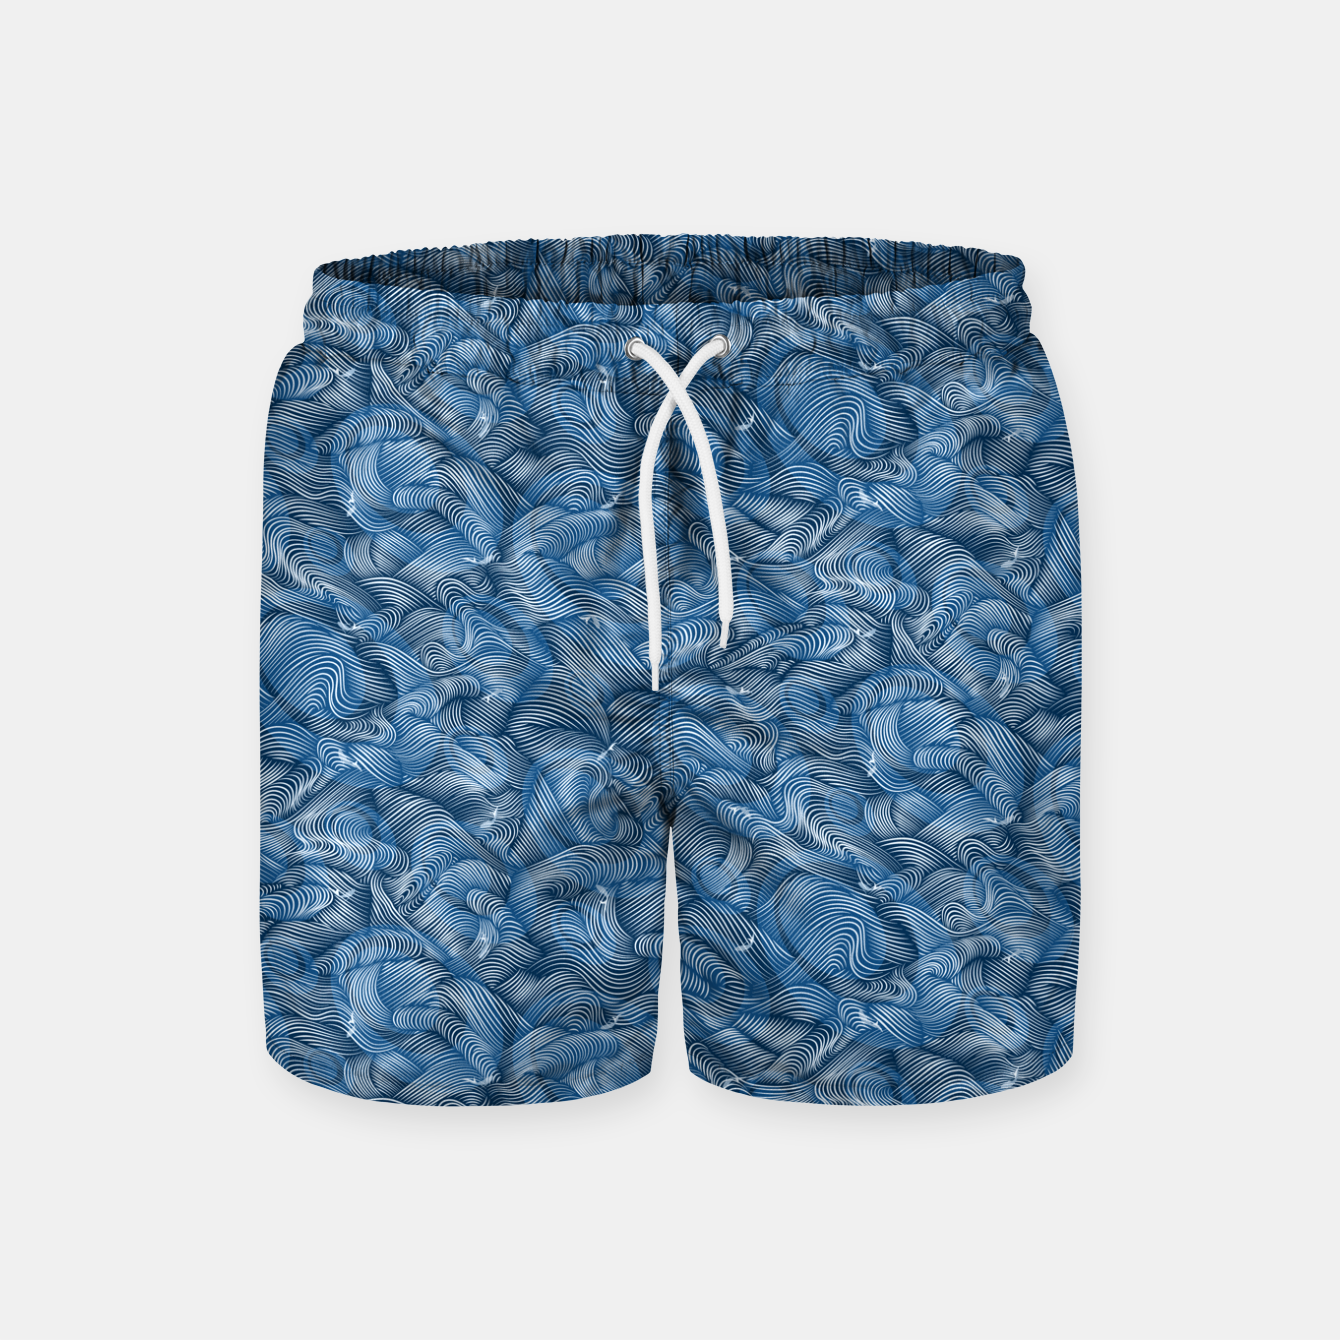 Foto Slippery Fishes Floating in the Classic Blue Waves Swim Shorts - Live Heroes